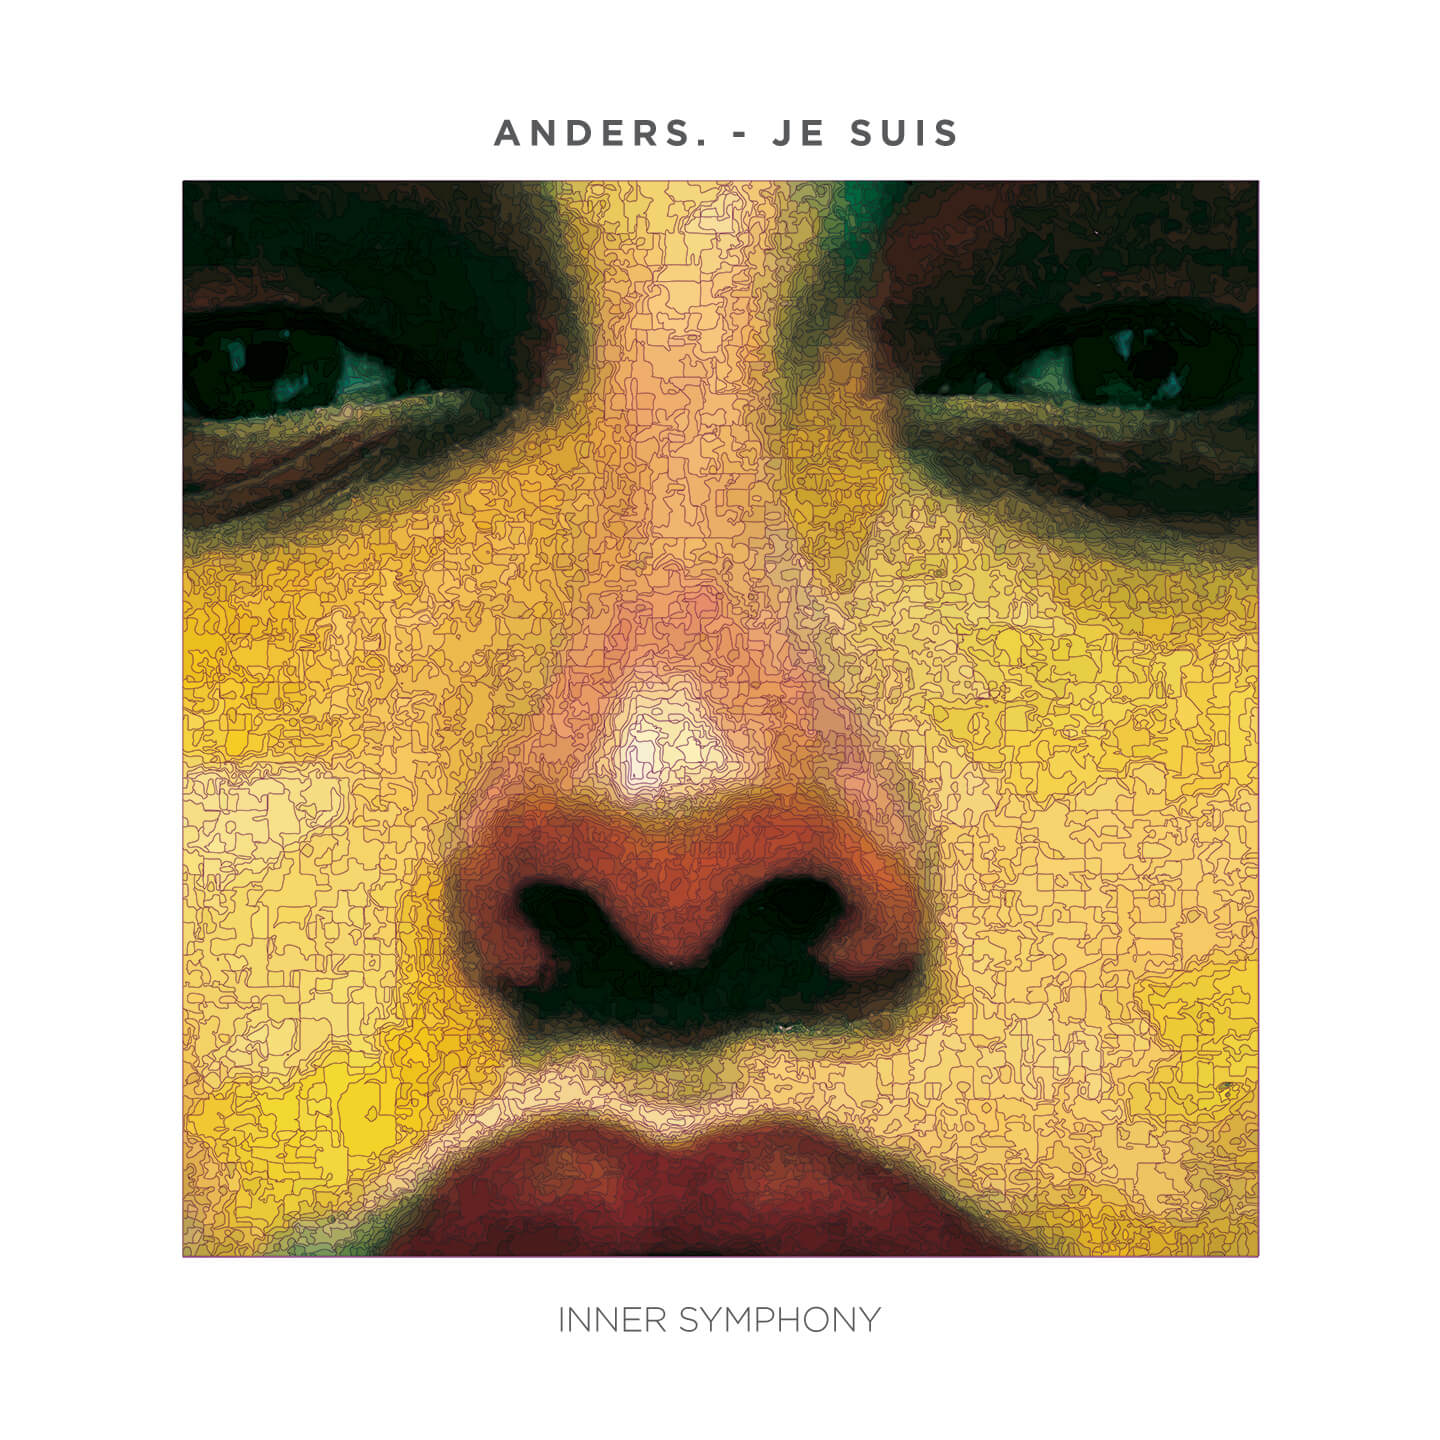 IS002 Anders. Je Suis - Inner Symphony